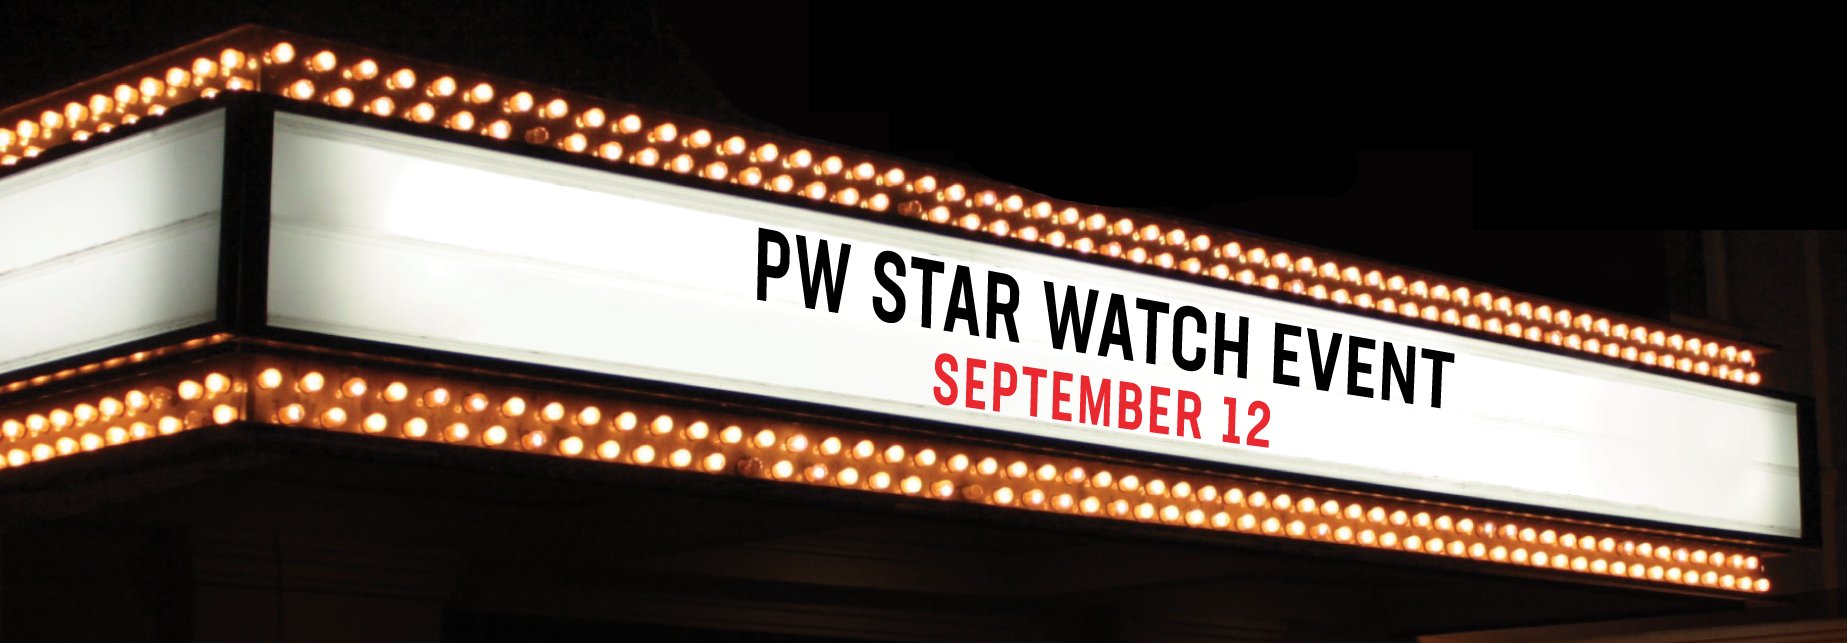 pw star watch 2018